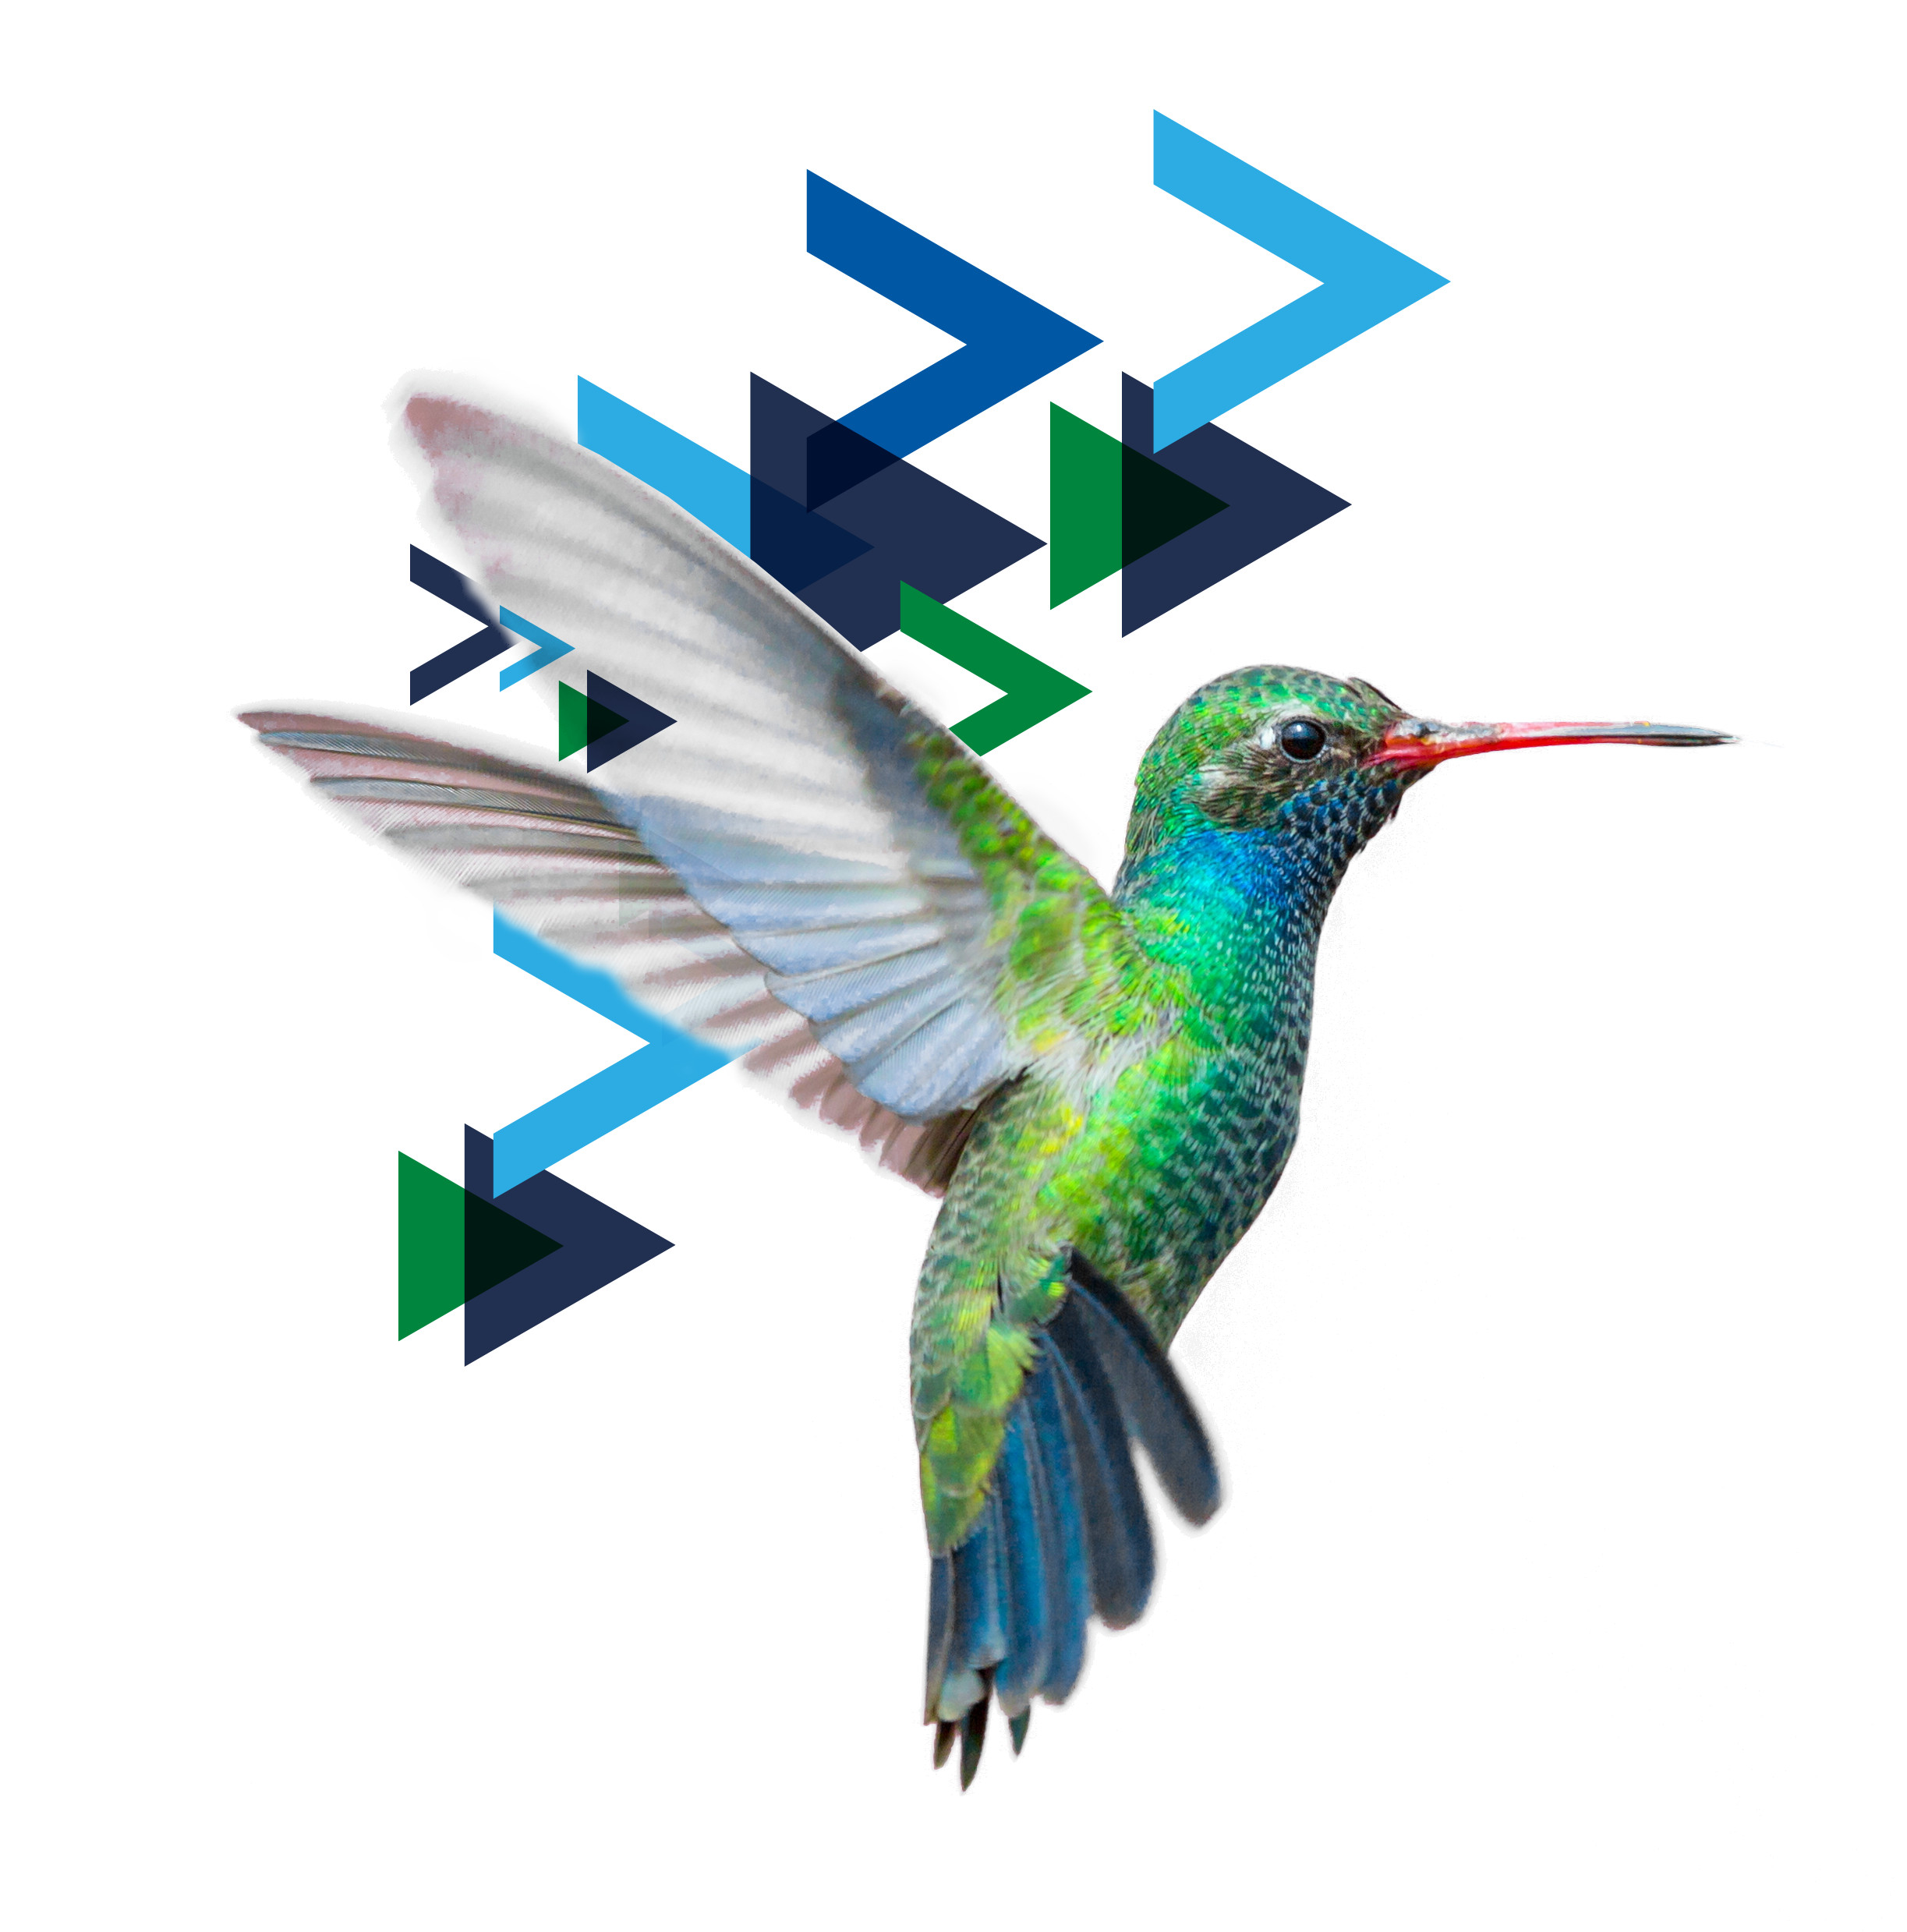 isolated jewel-toned hummingbird with Lever for Change brand icons lifting up the bird.